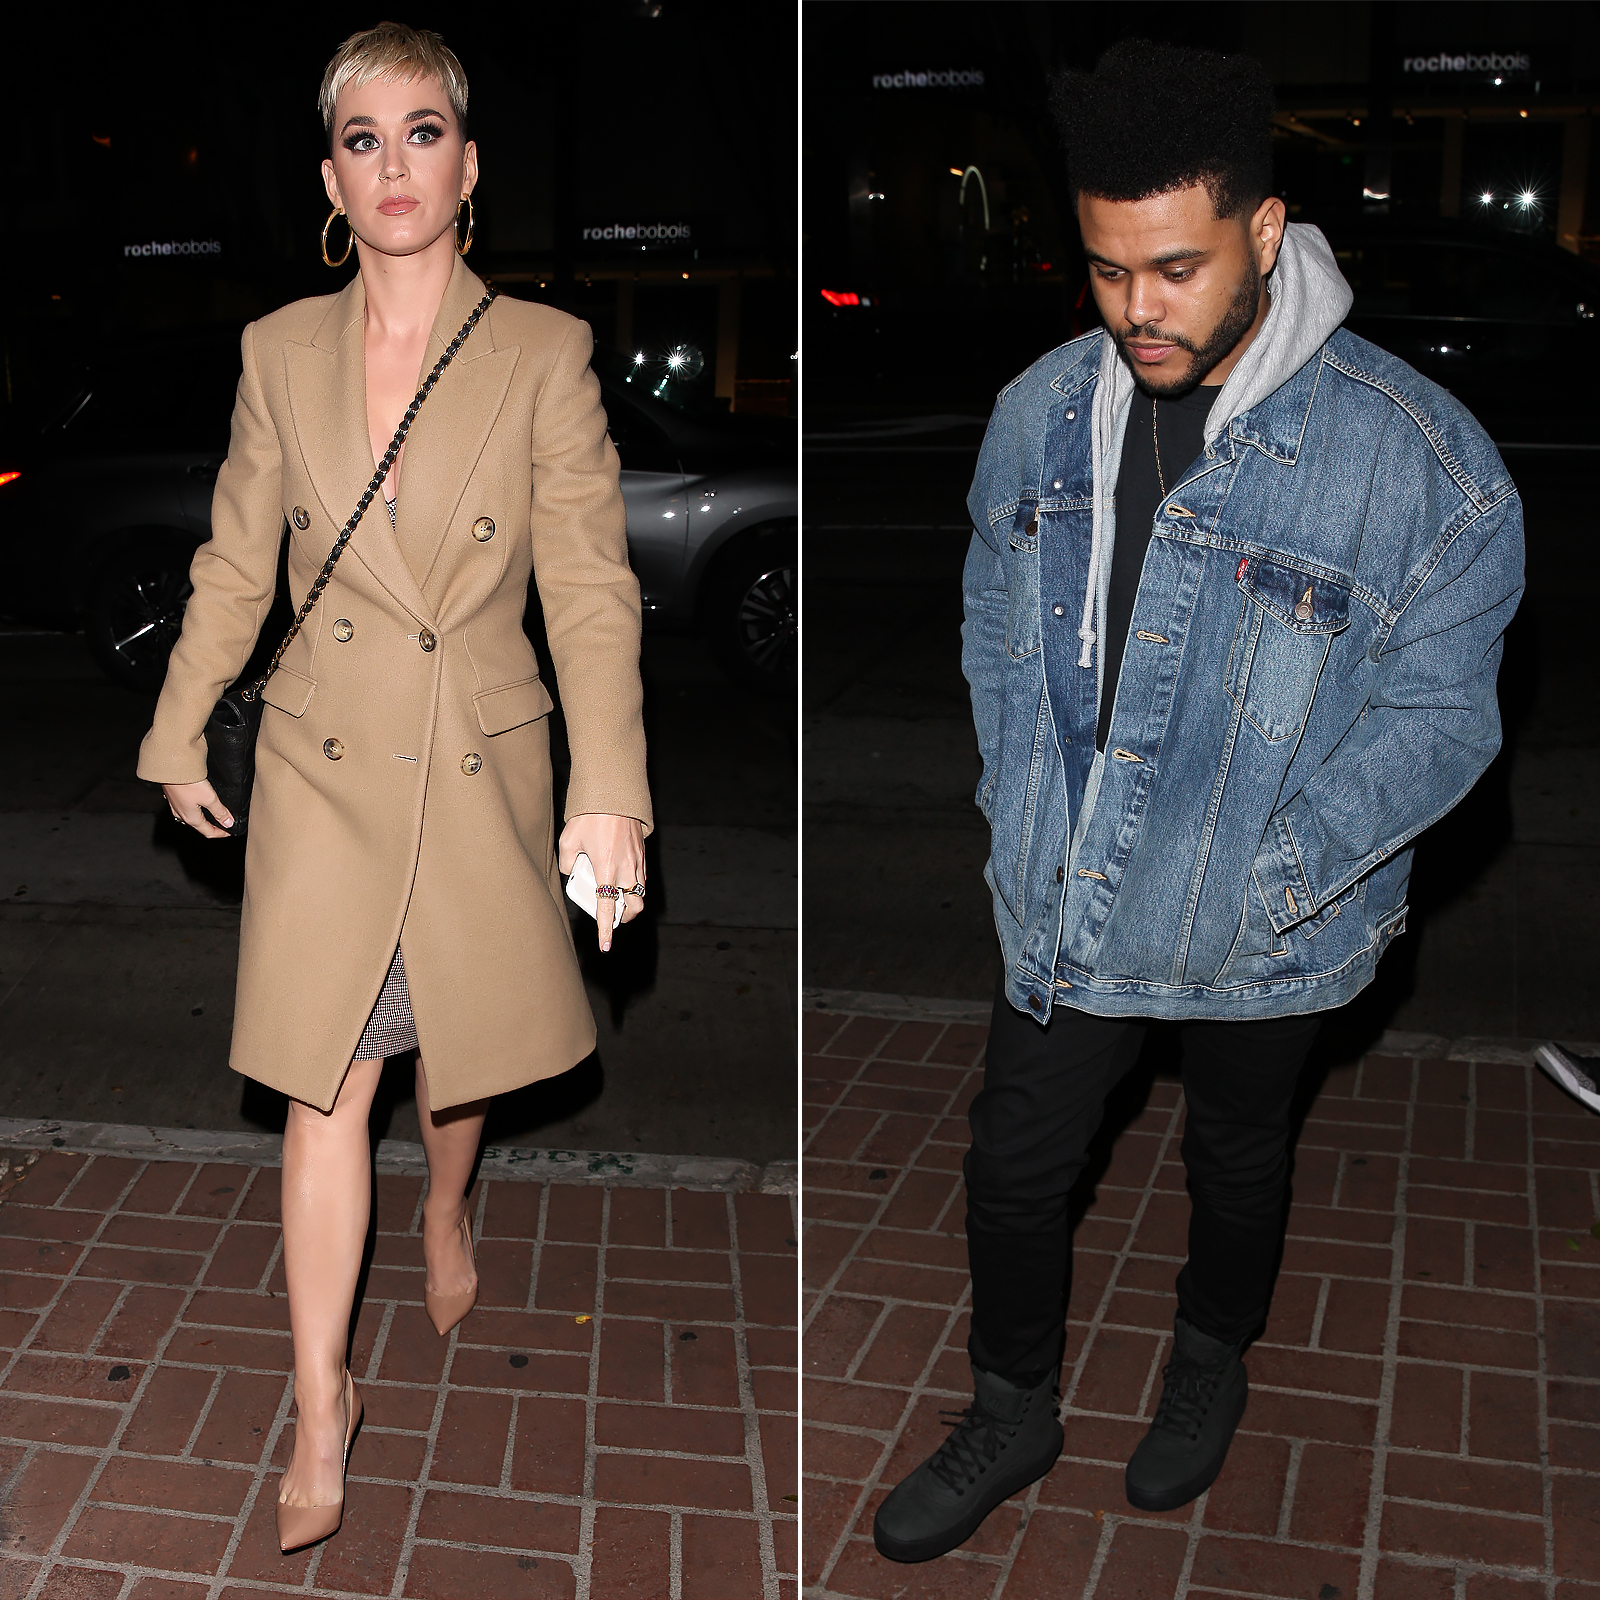 perry-weeknd-1